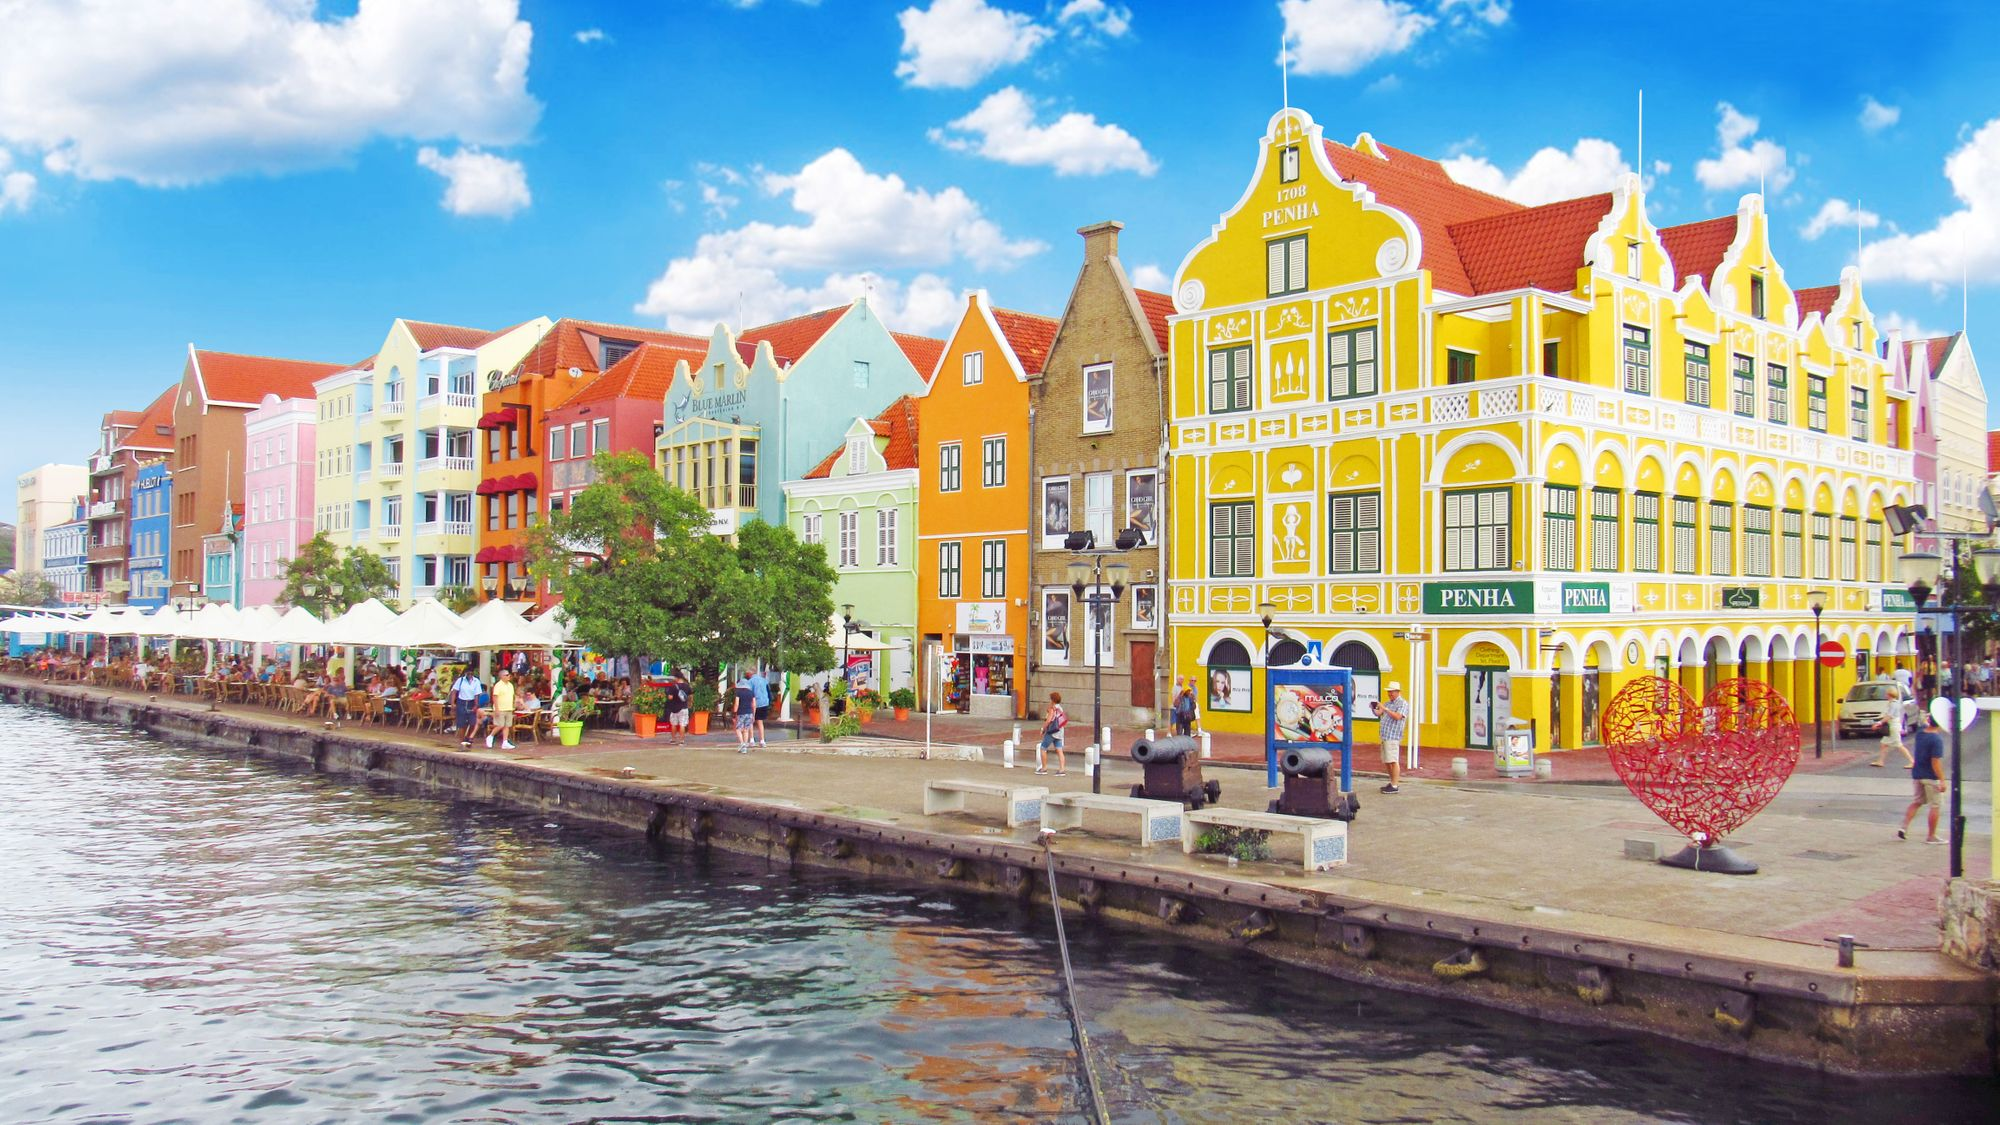 Things To Do In Curaçao - Here's Our Top 54!